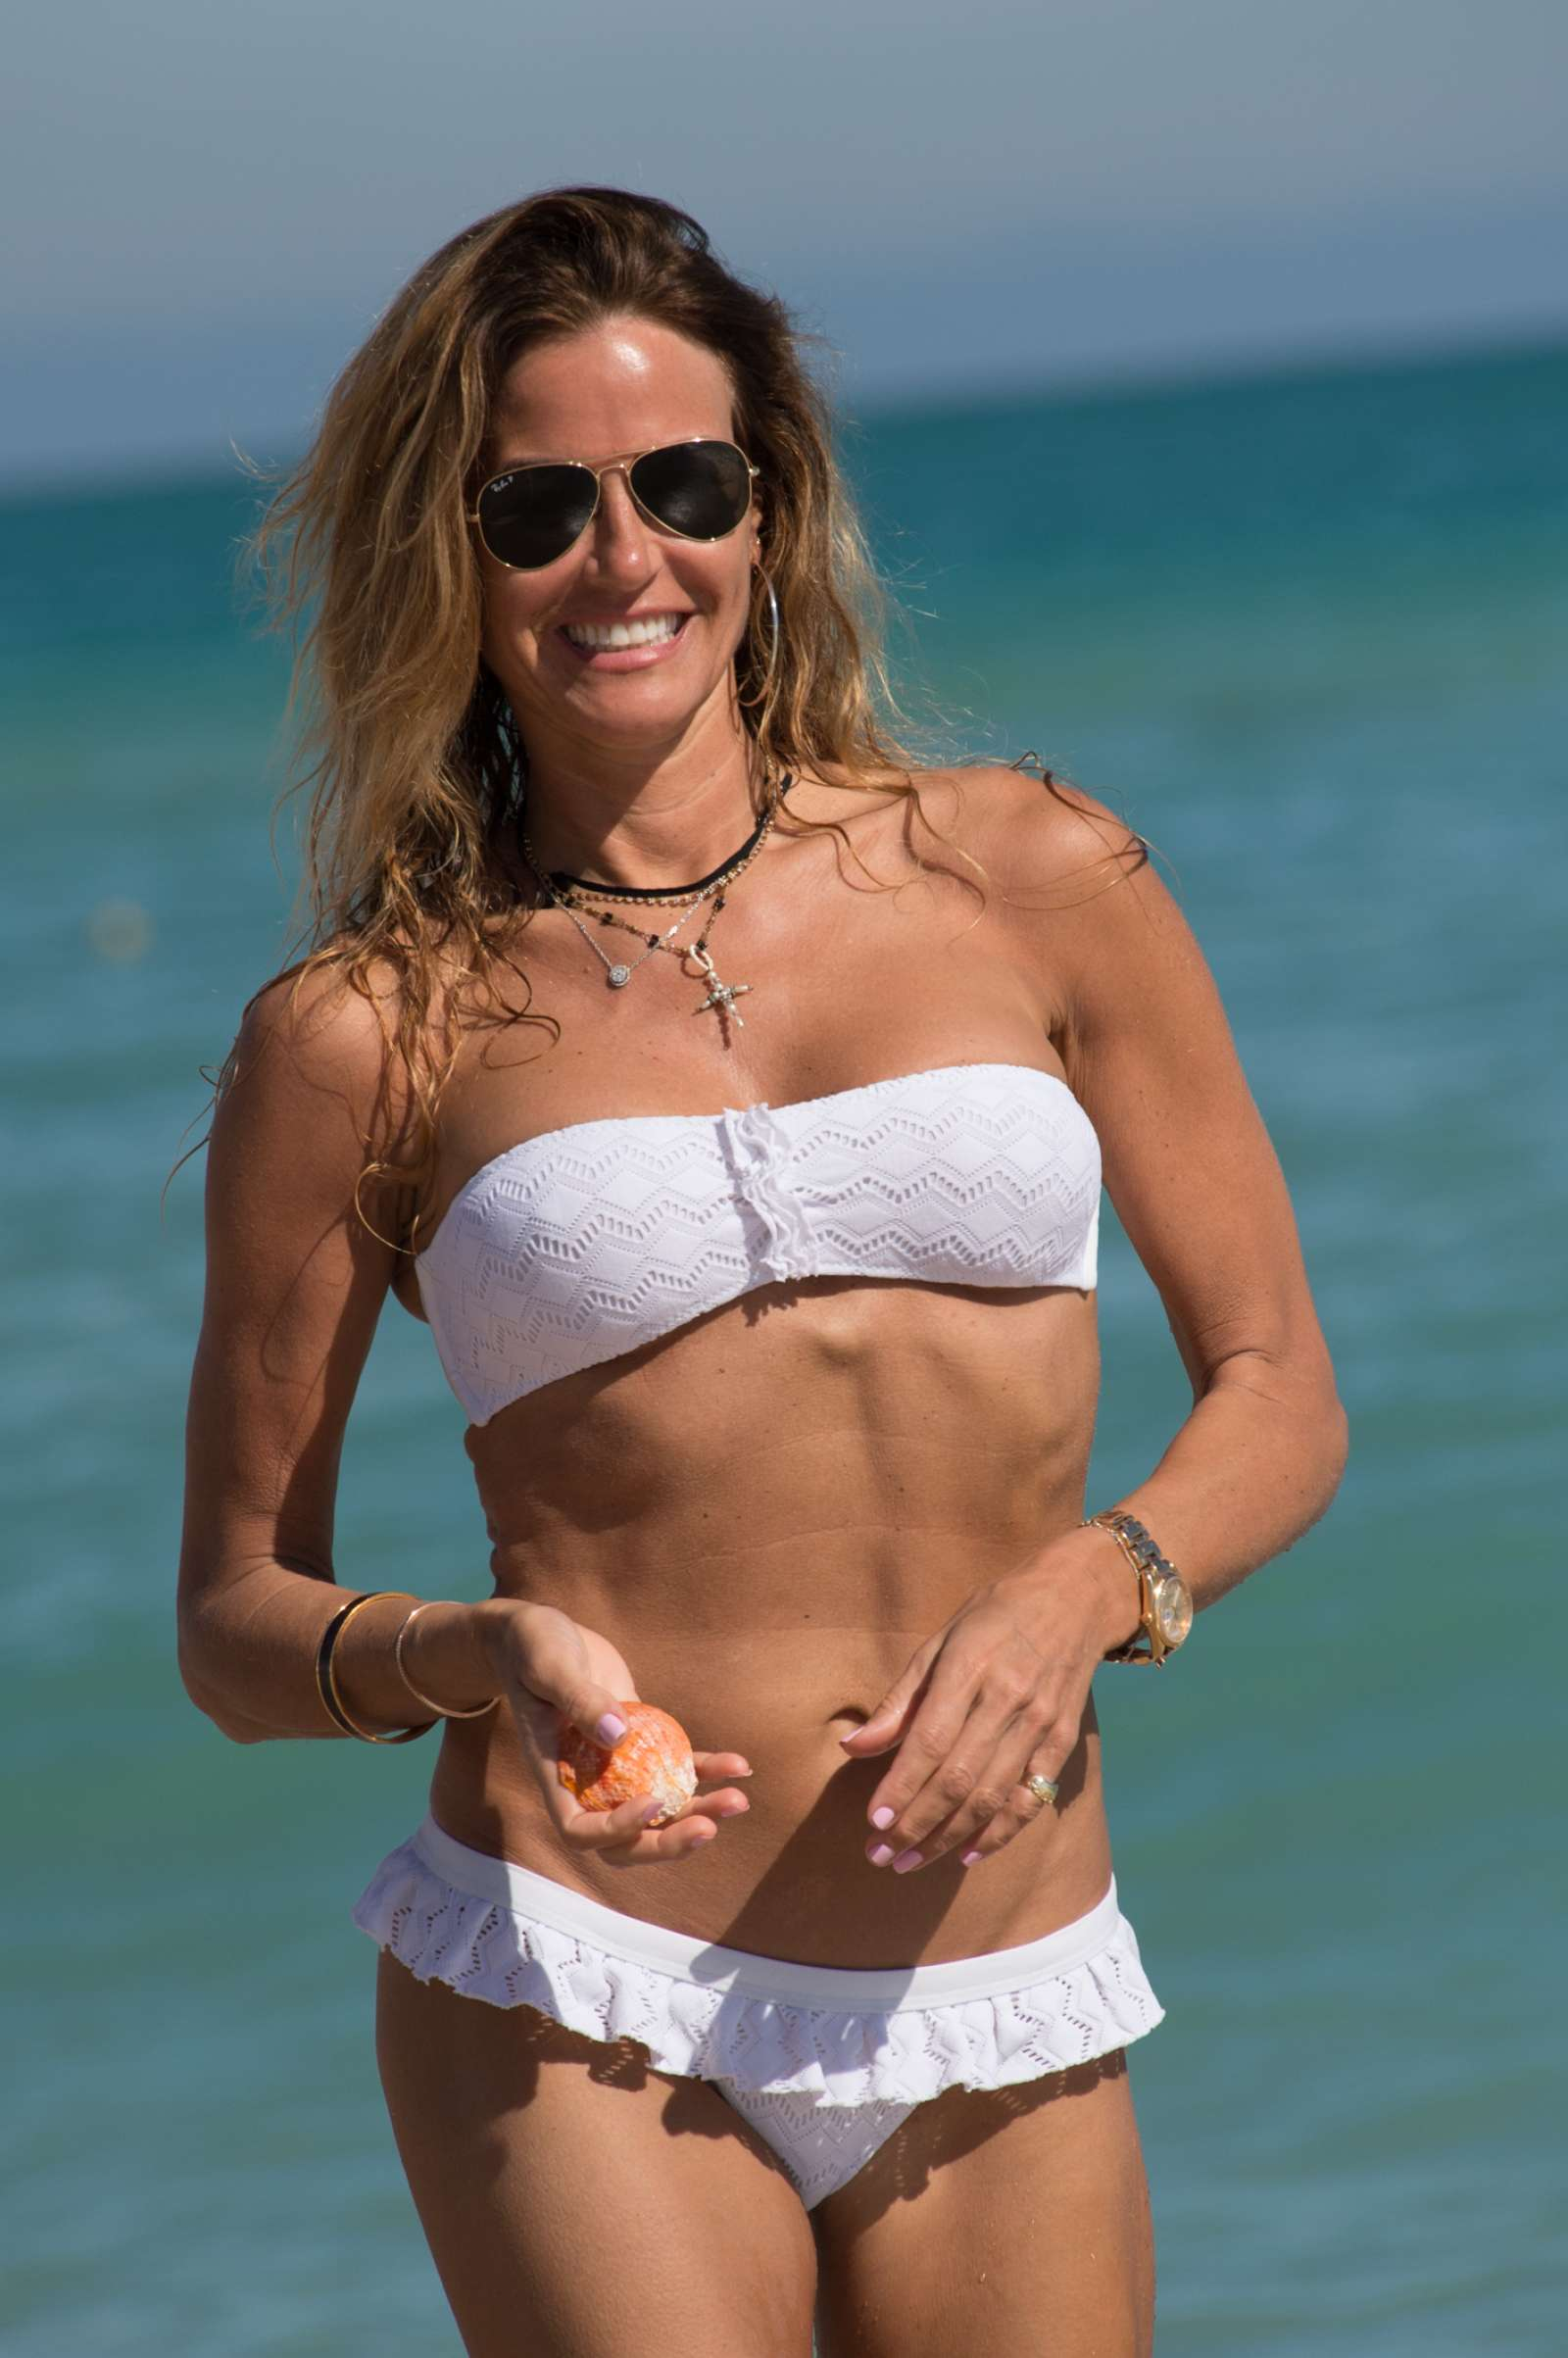 Kelly Bensimon in White Bikini in Miami Pic 29 of 35